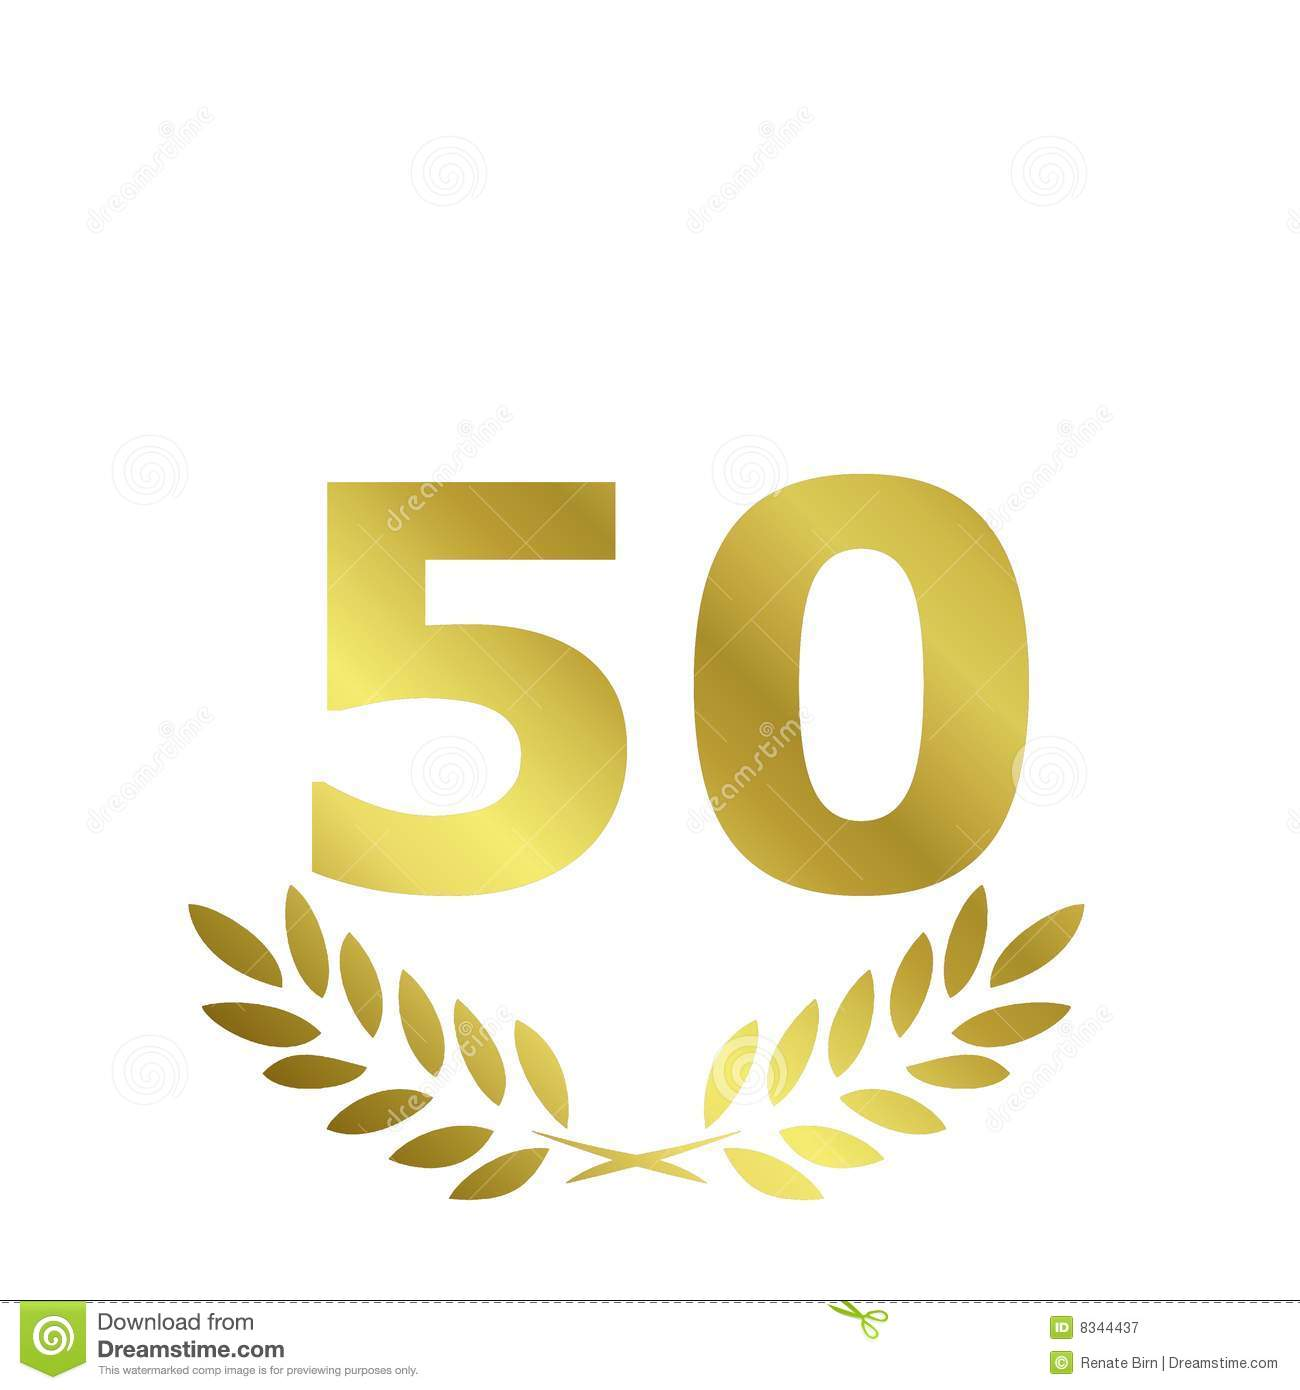 50 Anniversary Royalty Free Stock Photography Image 8344437 intended for Free Clip Art 50